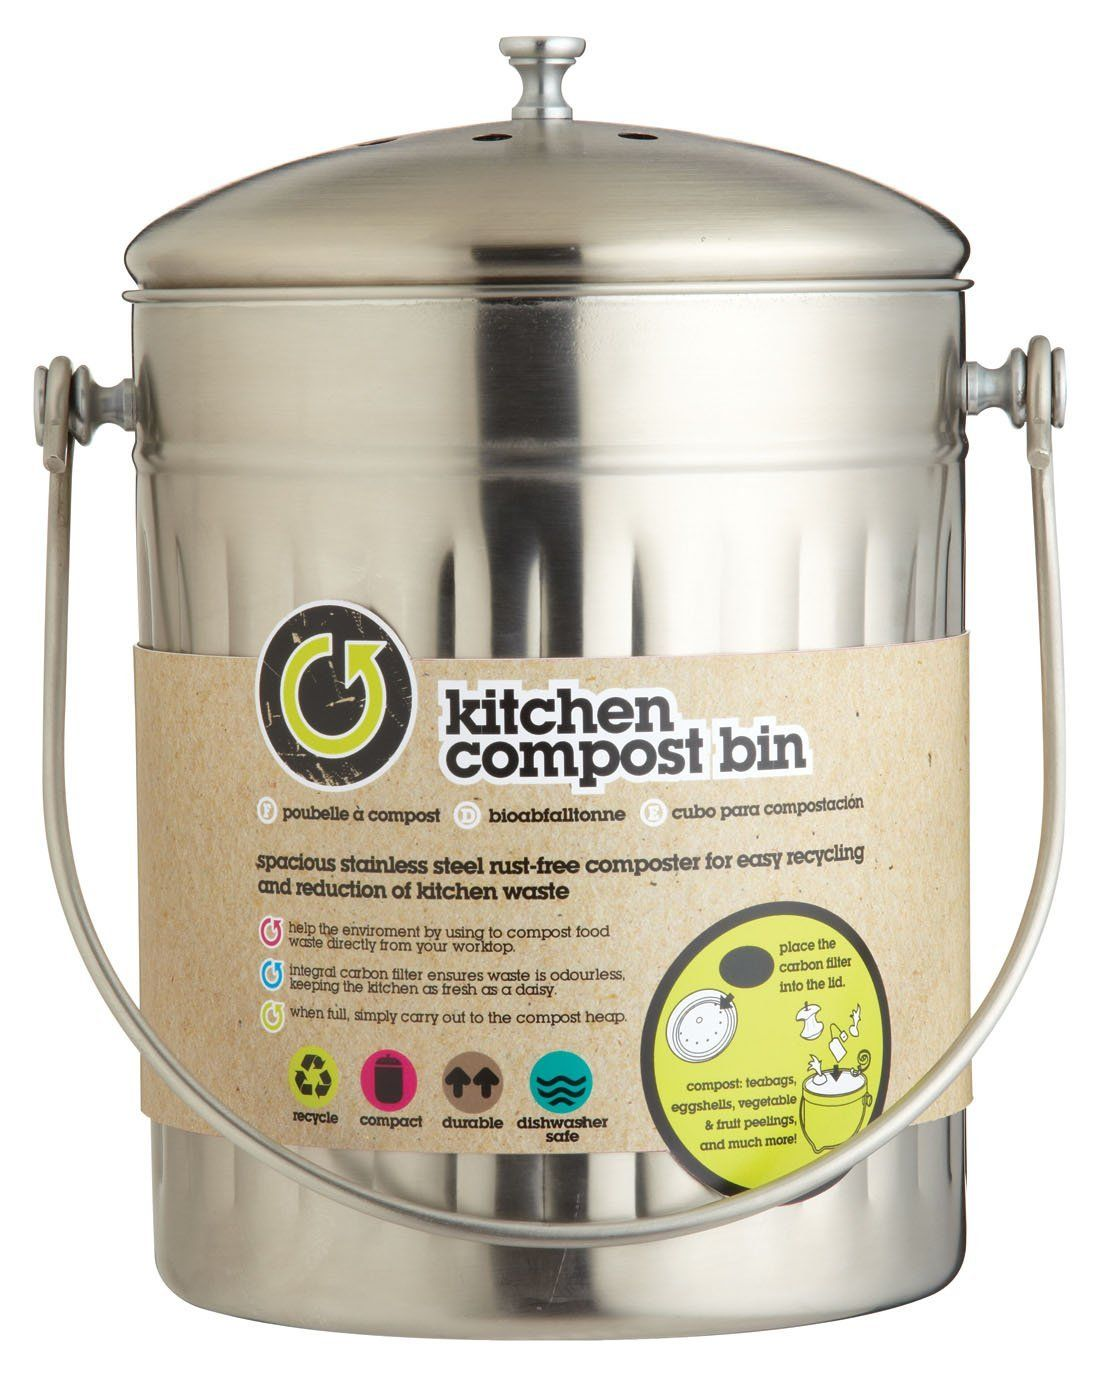 Poubelle De Cuisine Le Guide Ultime Kitchen Compost Bin